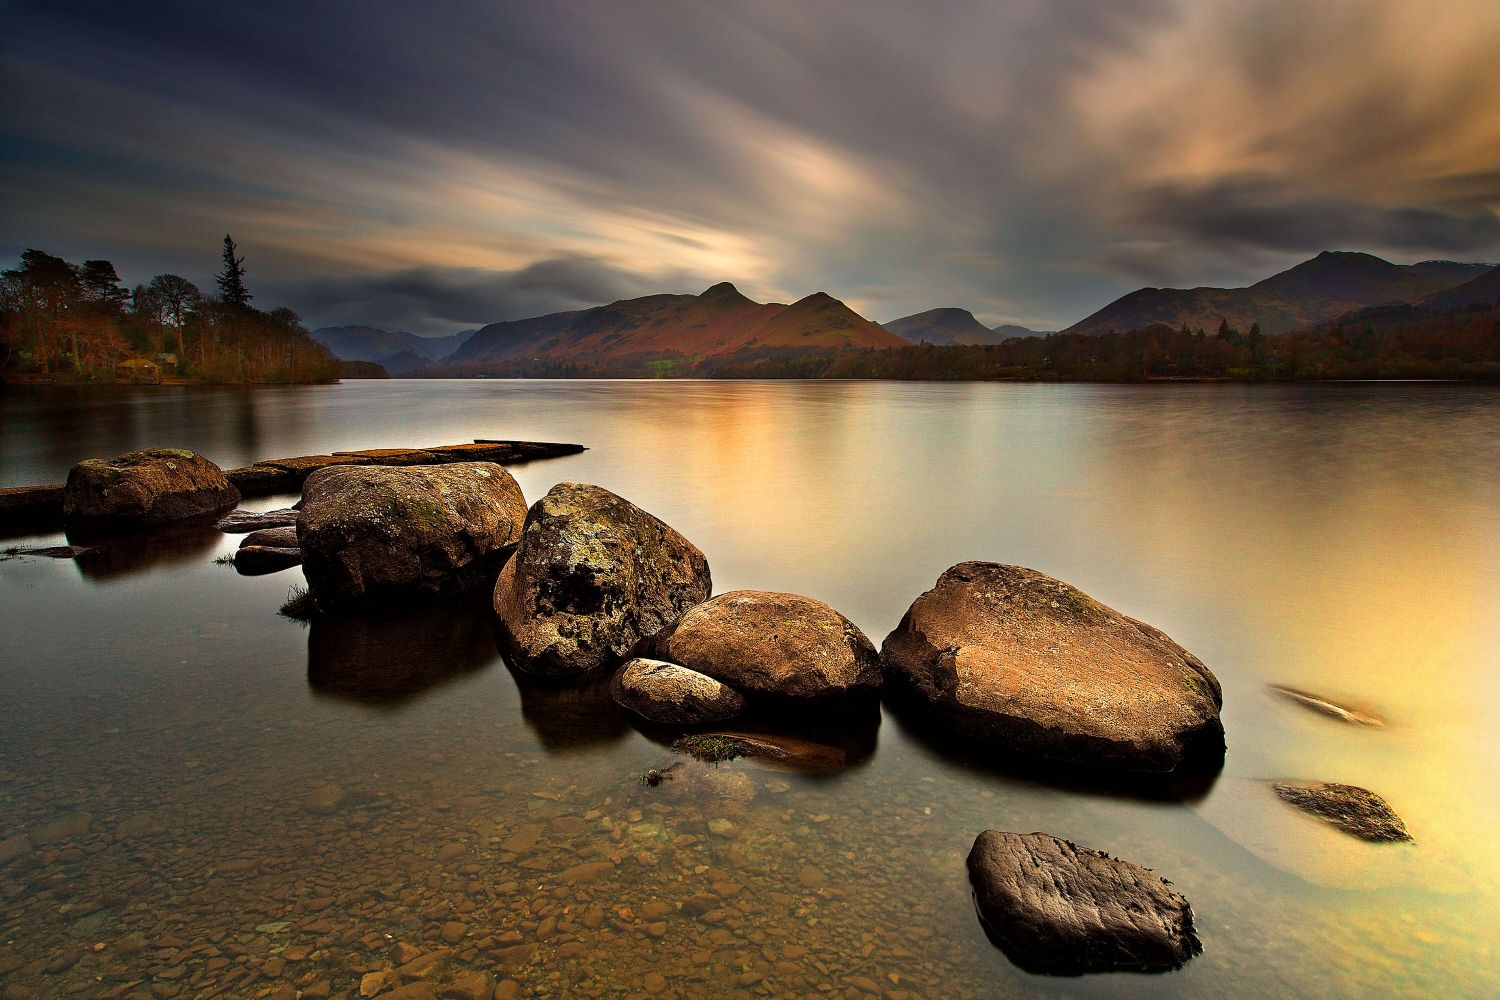 Last Rays of Light over Isthmus Bay Derwentwater